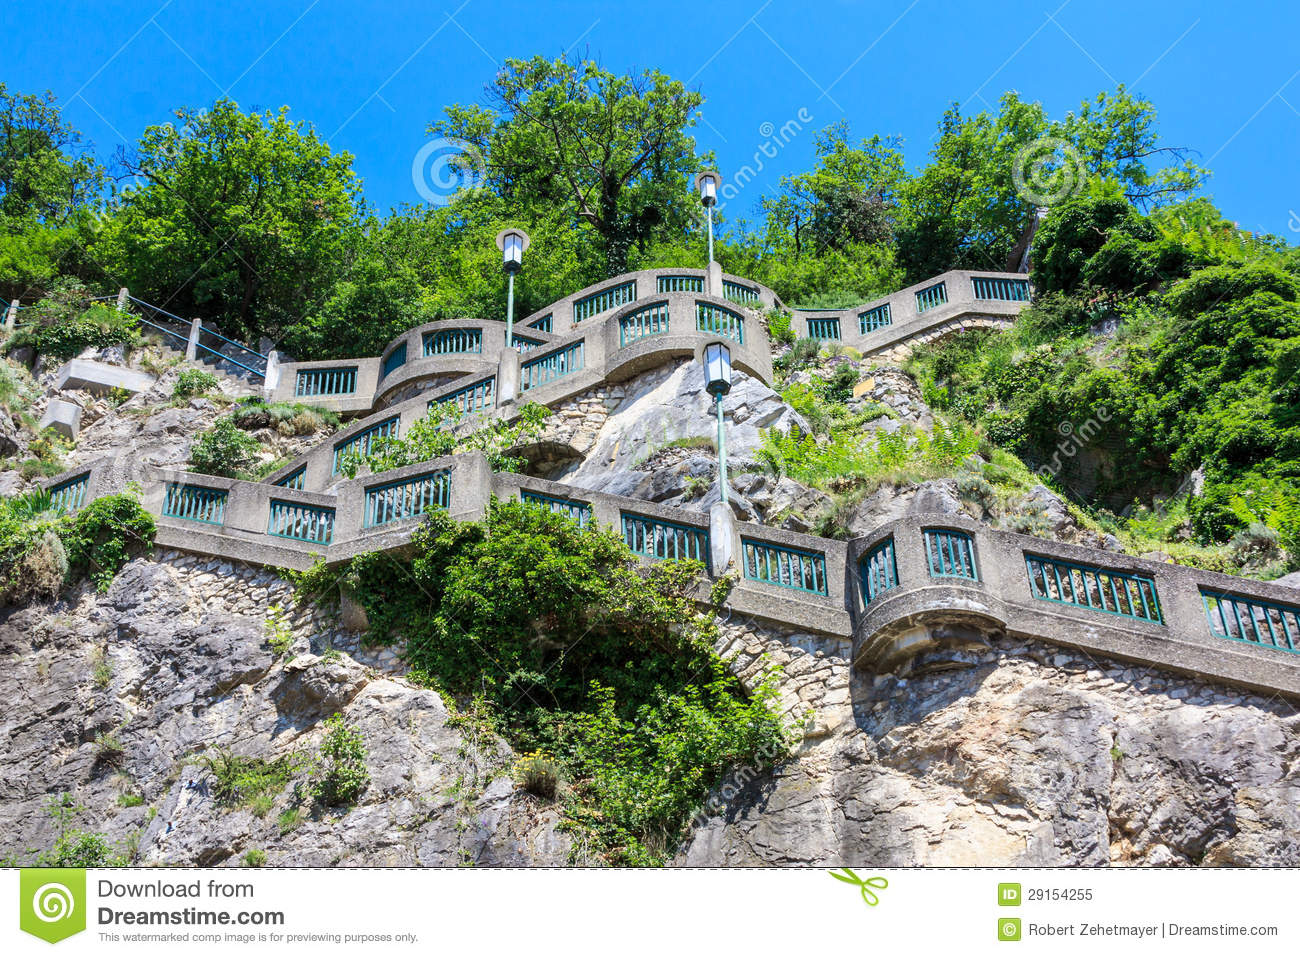 graz stairs to schlossberg hill austria royalty free stock photo image 29154255. Black Bedroom Furniture Sets. Home Design Ideas